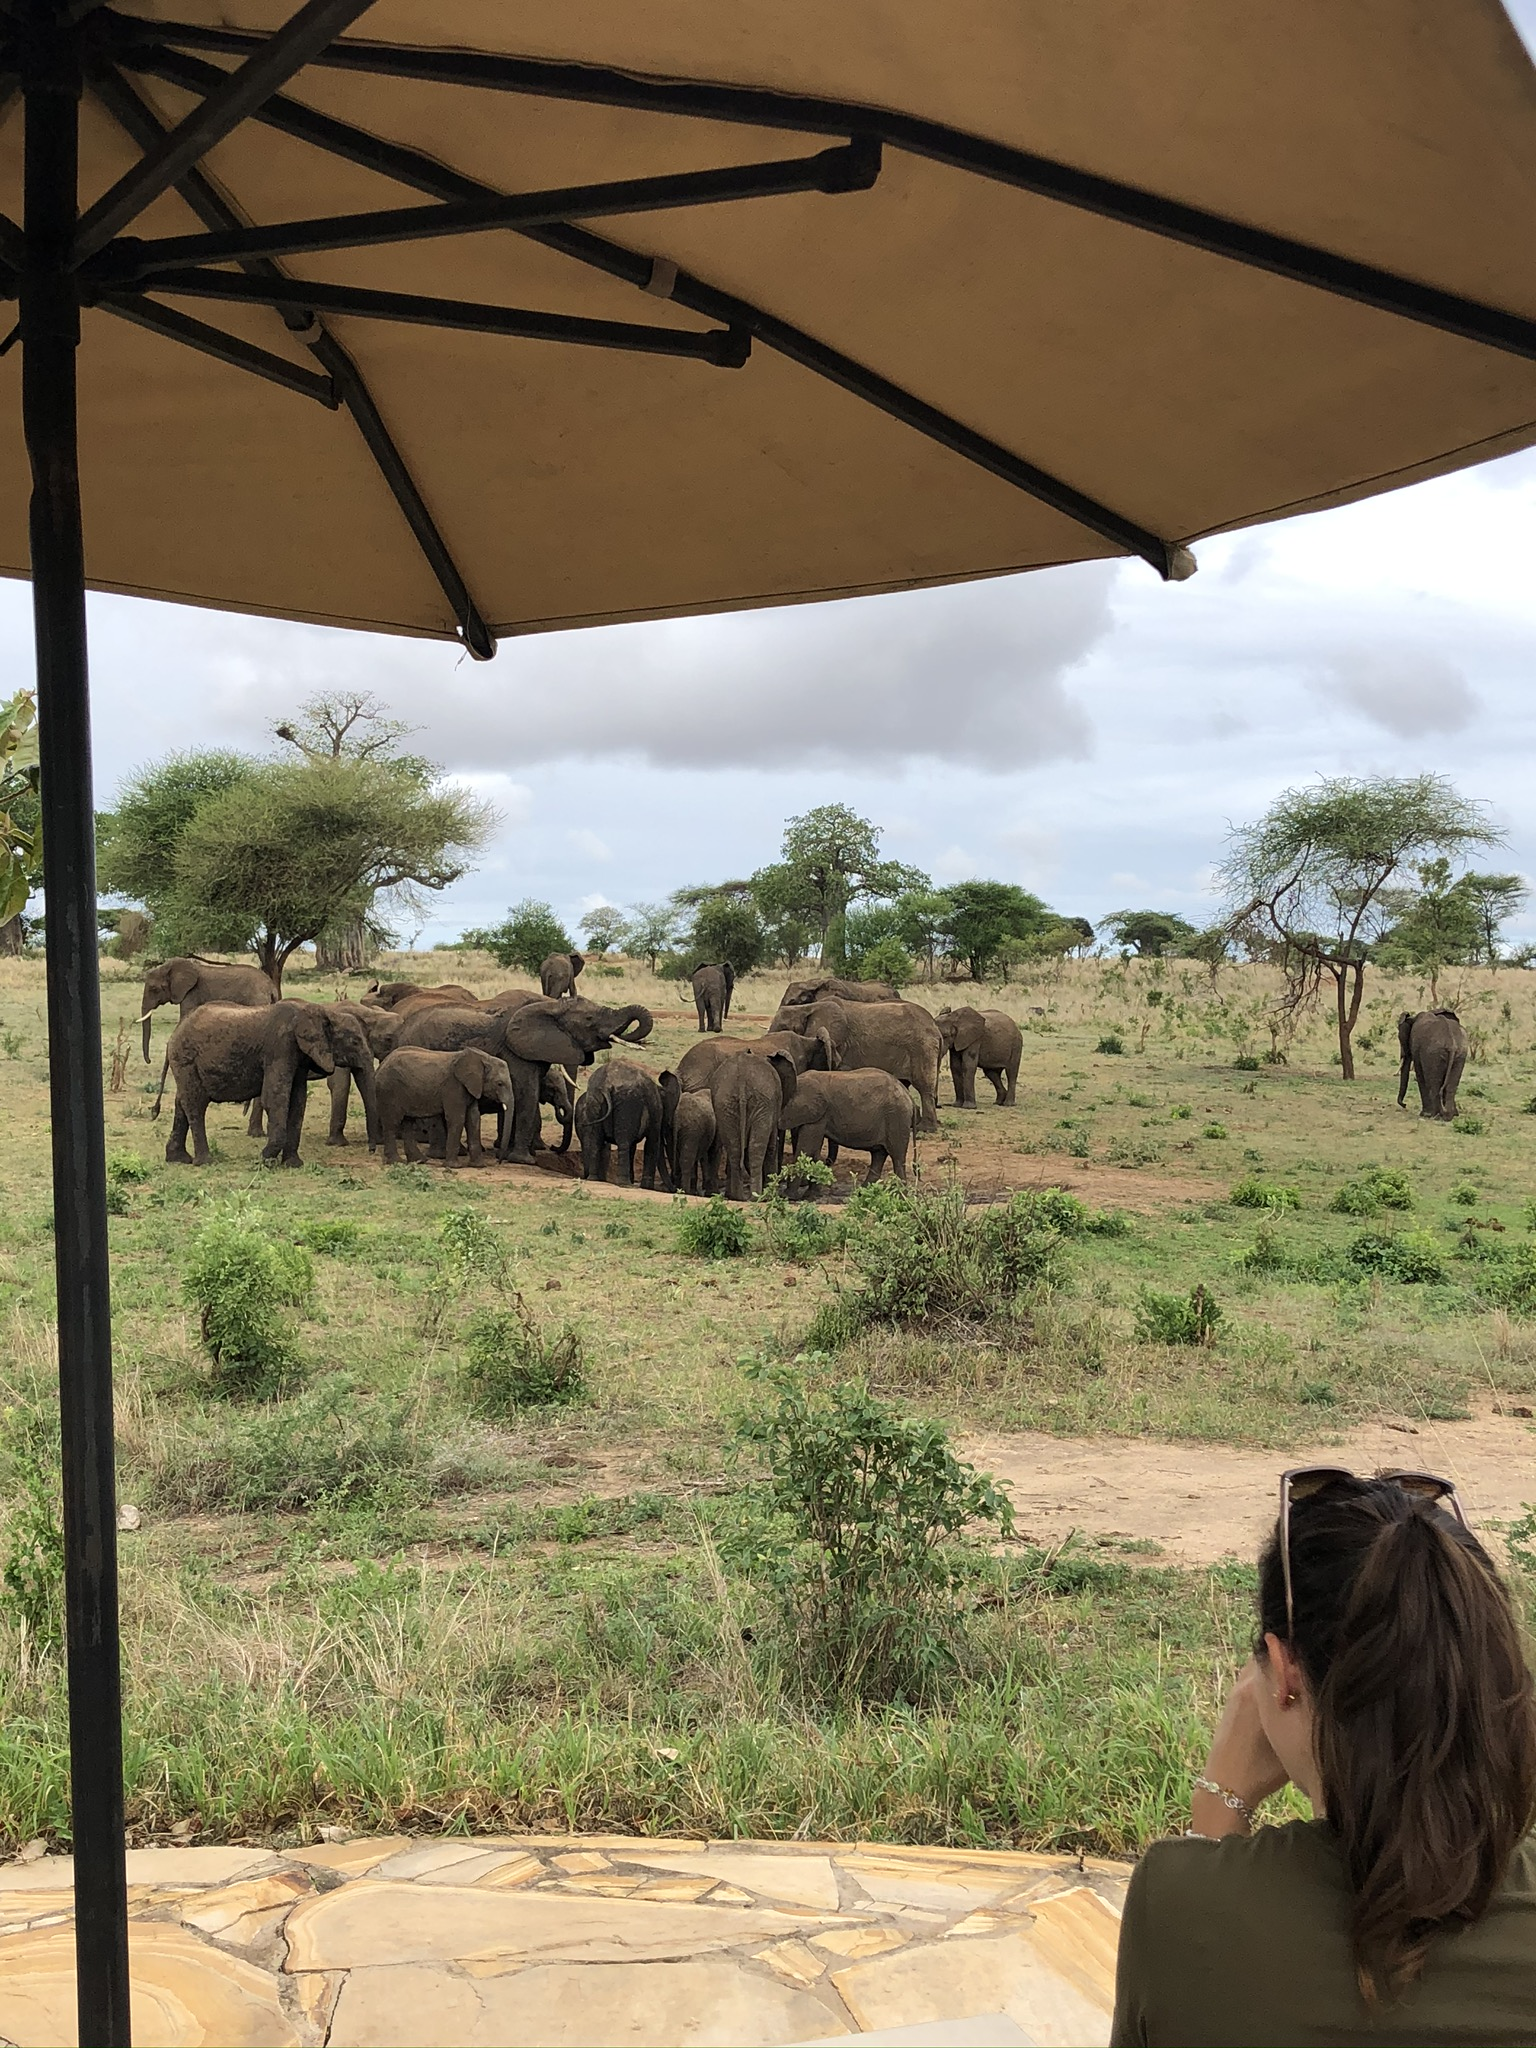 Nimali Africa fam trip 2019 with Helen & Sally